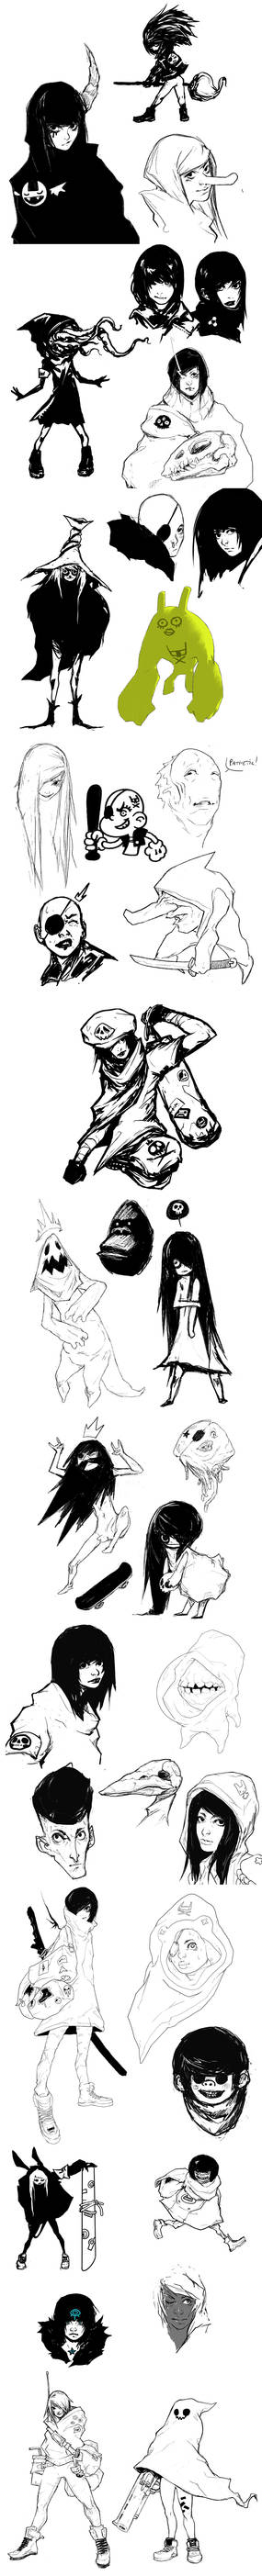 Ghost sketches